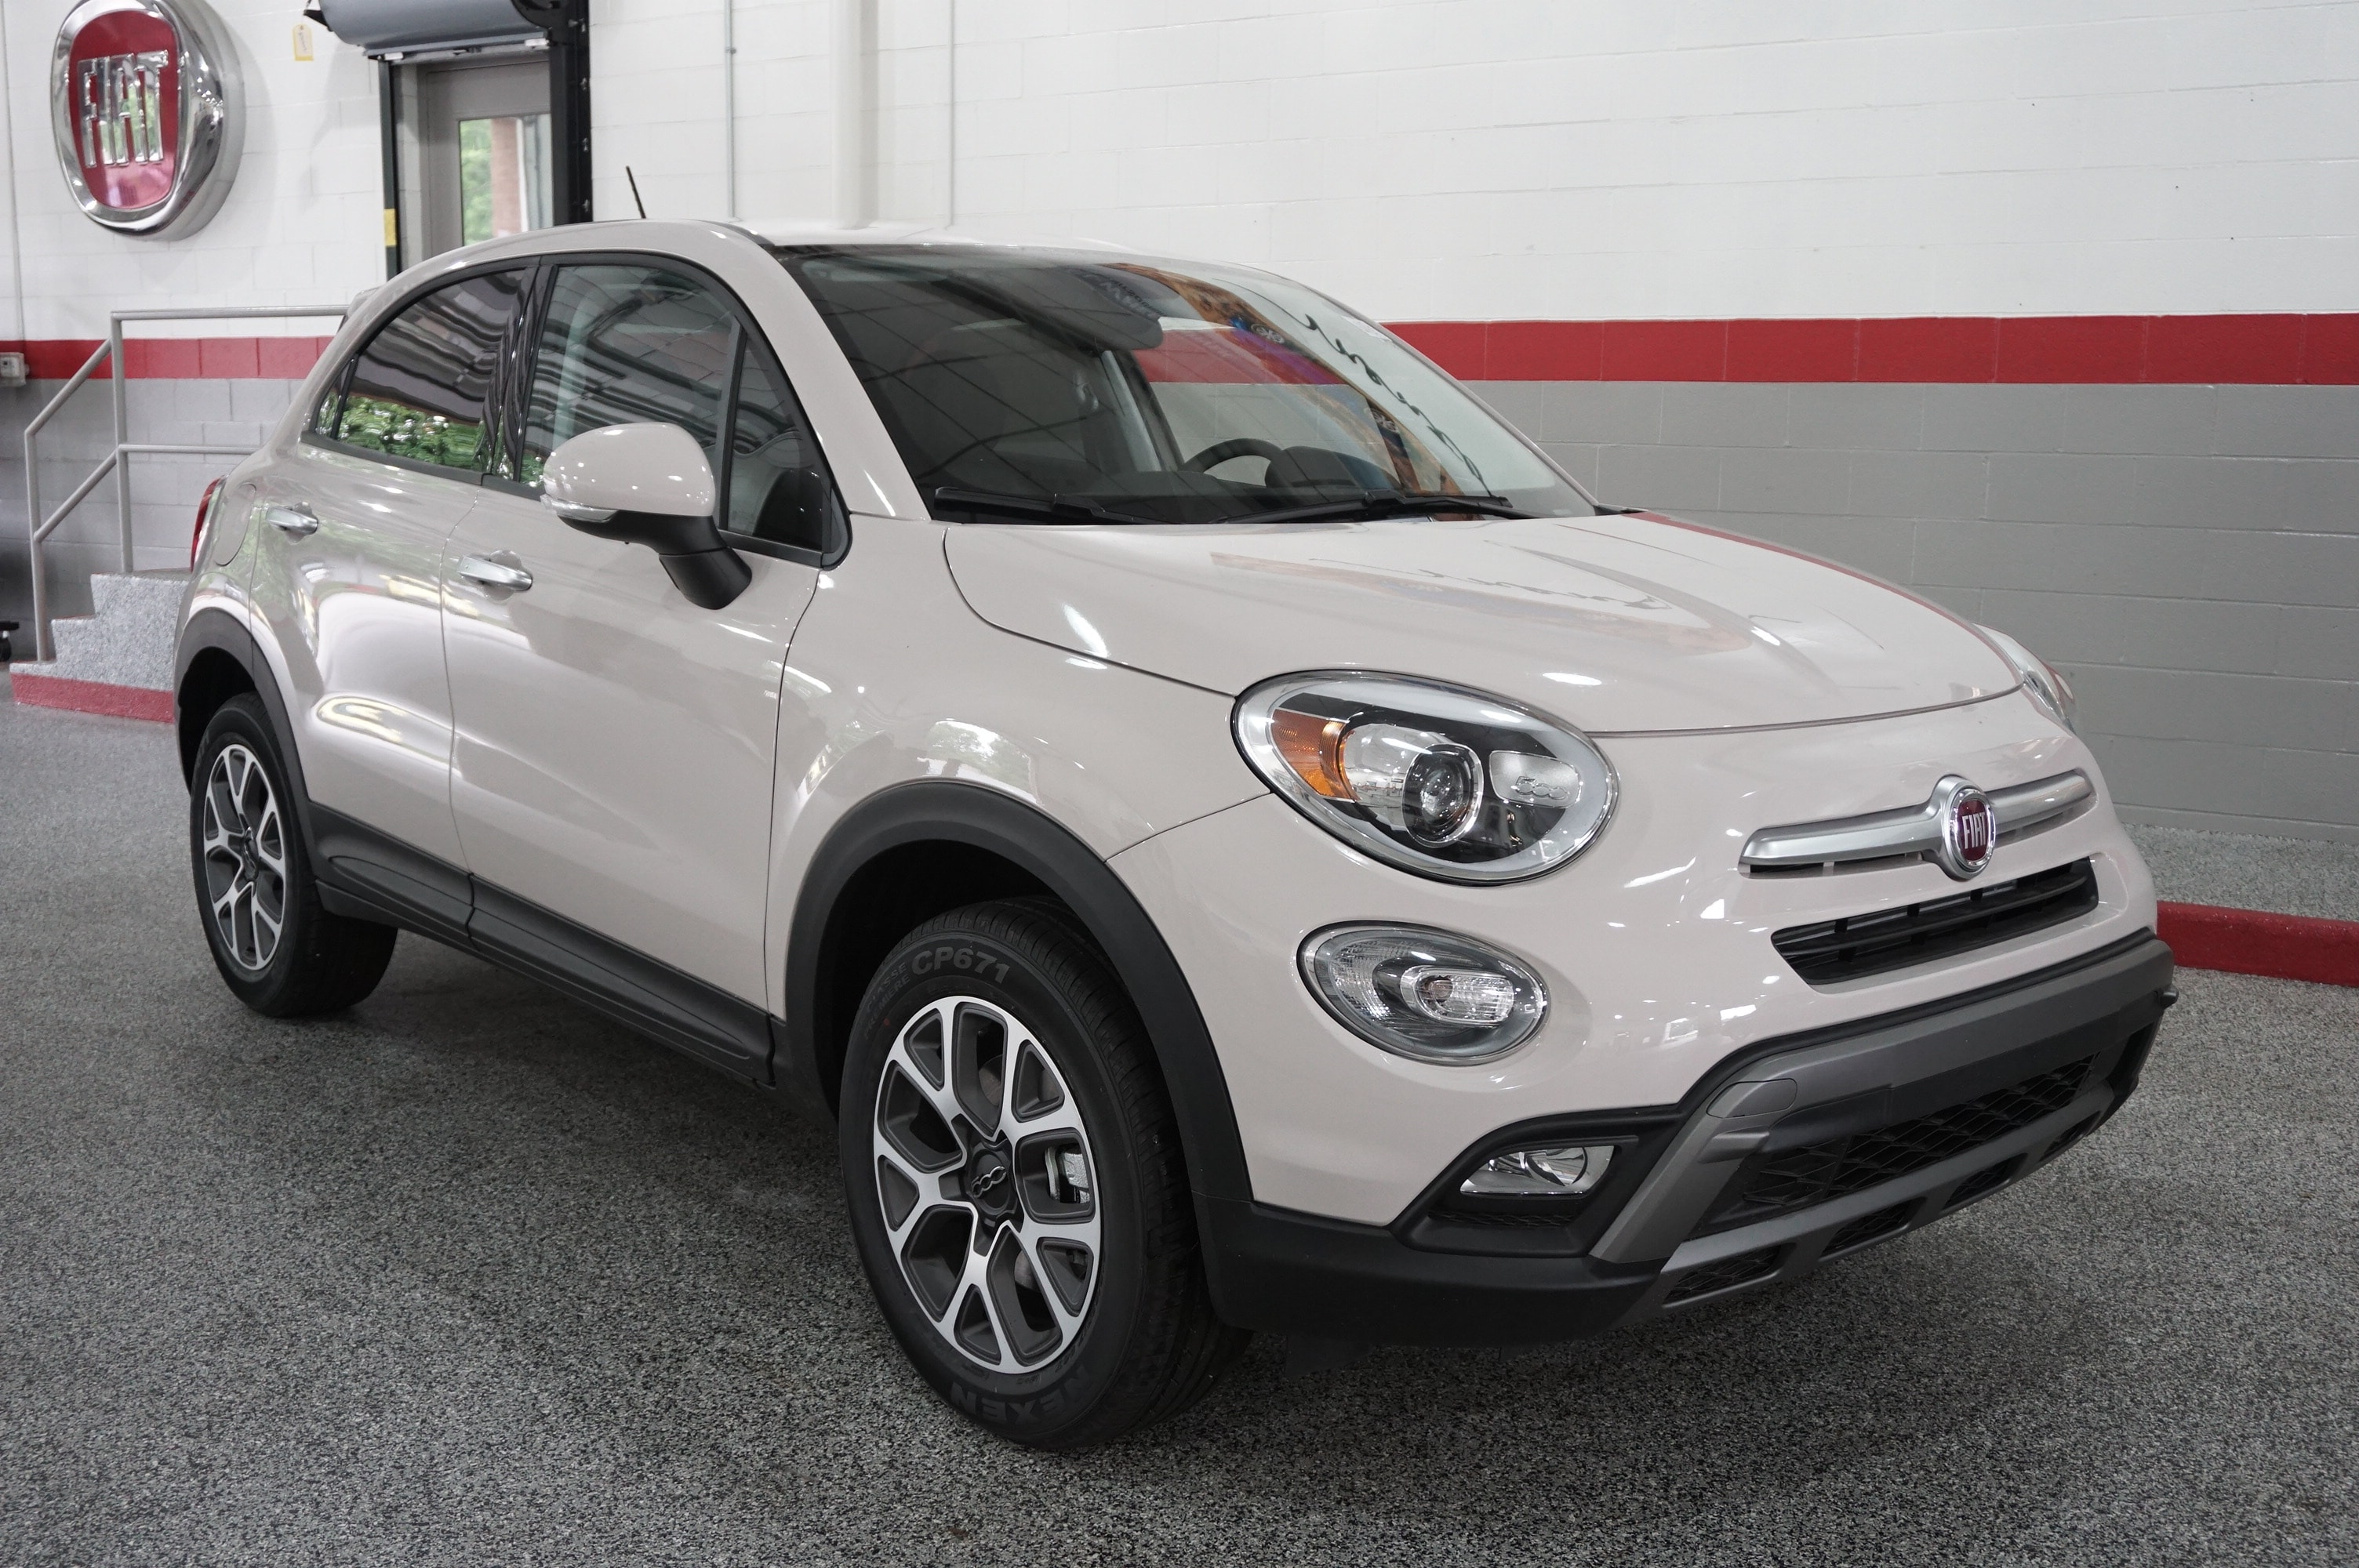 2015 fiat 500x review fiat crossover suv mentor oh. Black Bedroom Furniture Sets. Home Design Ideas